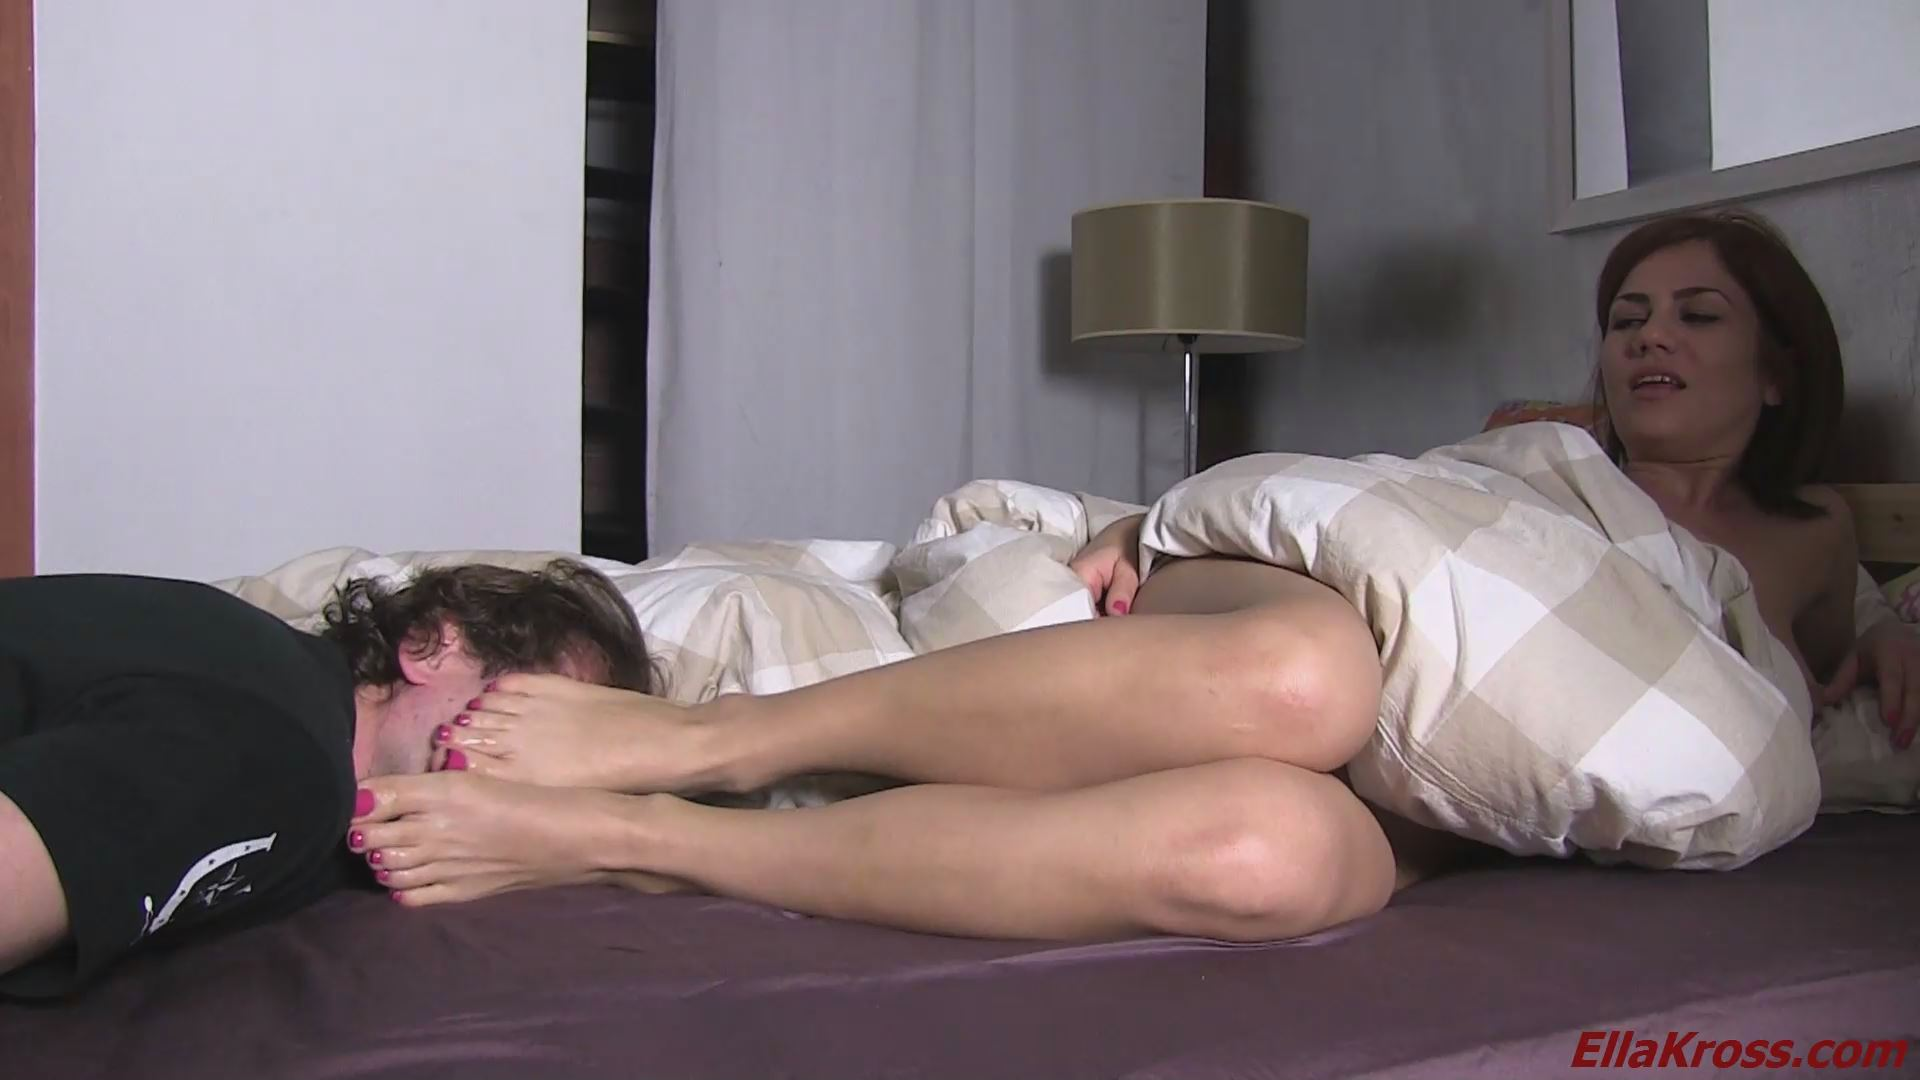 Ella Kross In Scene: Woken by a Foot Fetish Freak - ELLAKROSS - FULL HD/1080p/MP4